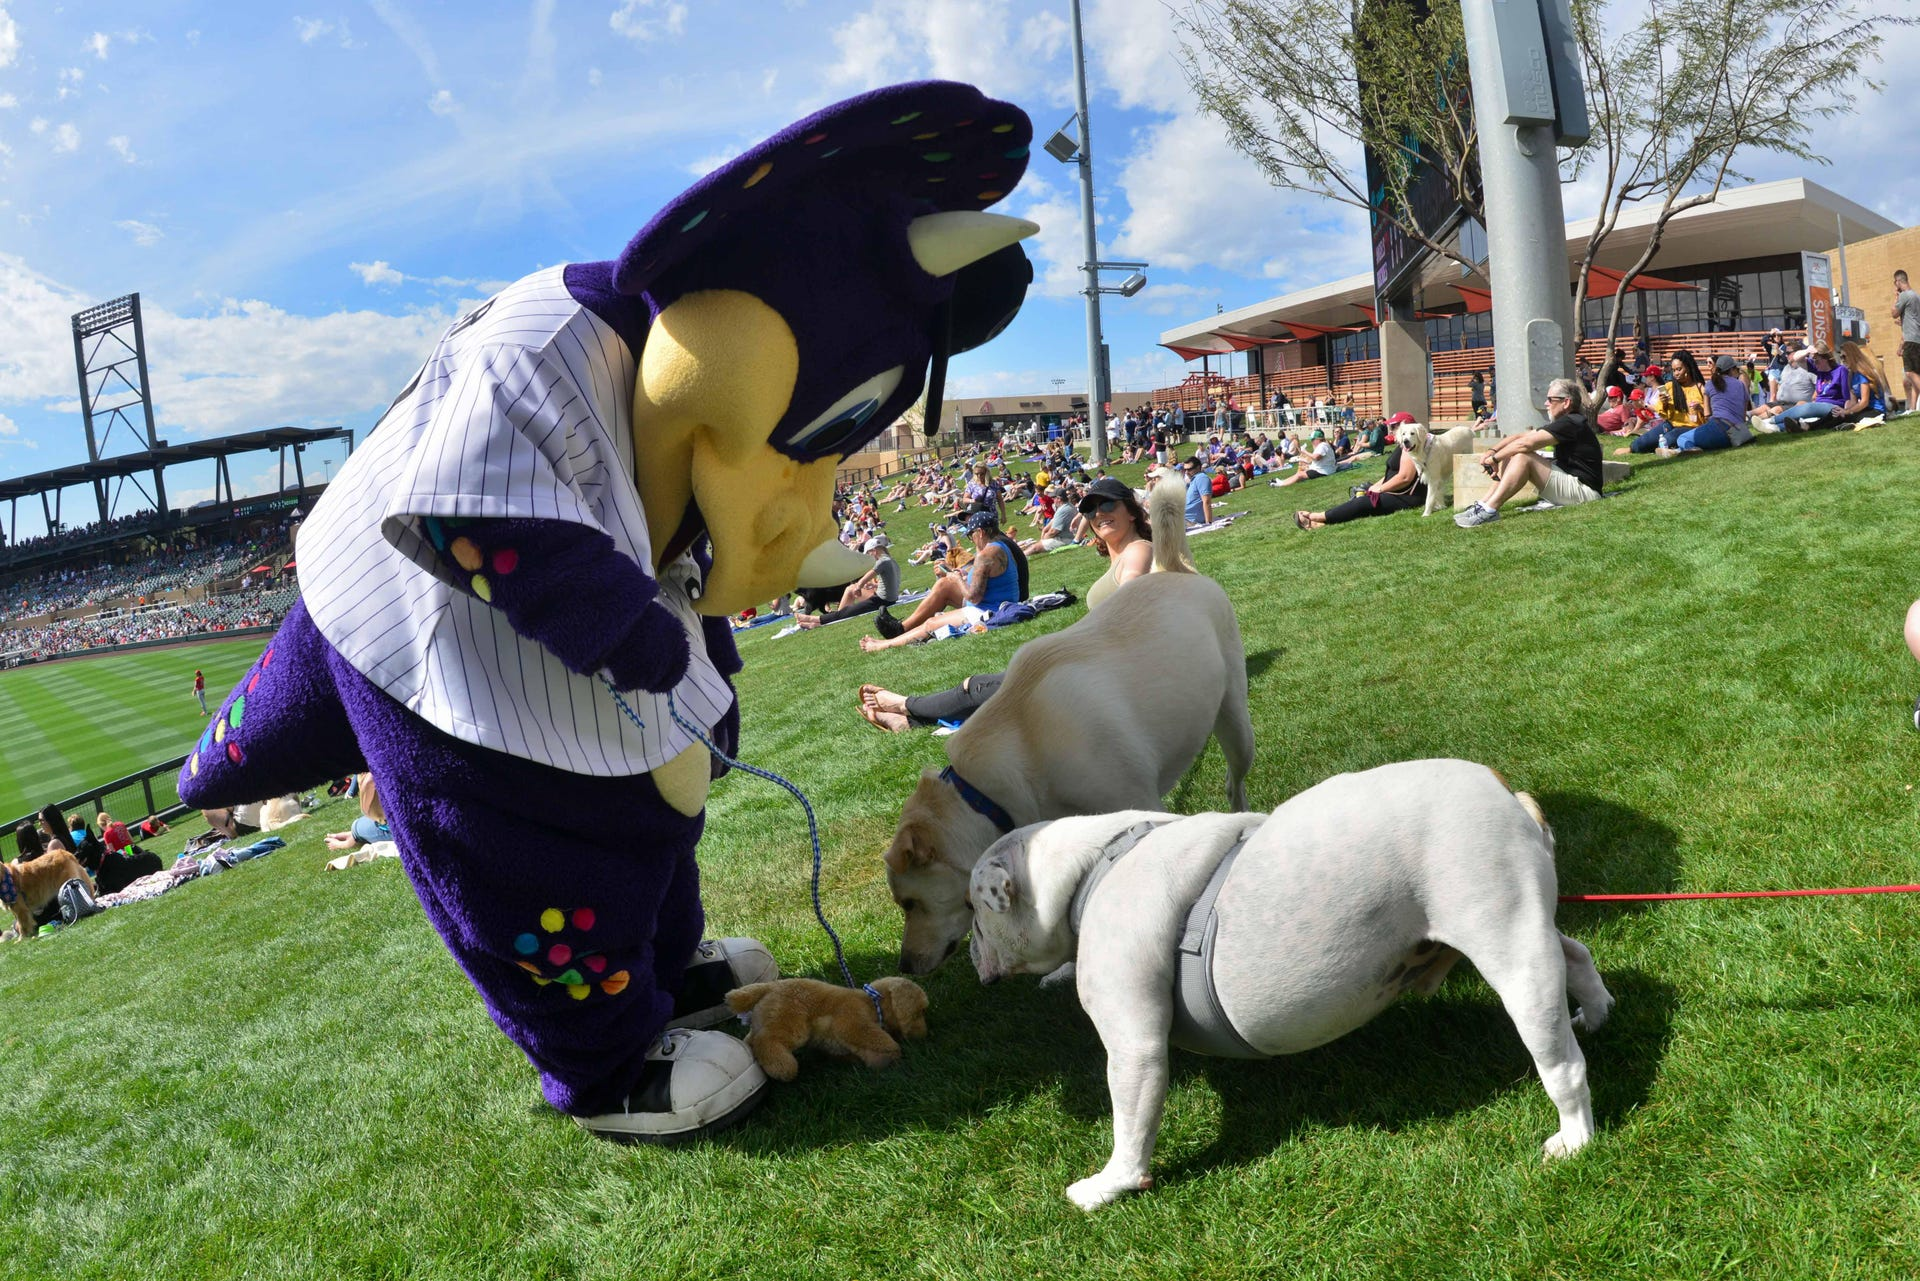 March 6, 2019: Salt River Fields (Rockies spring training)